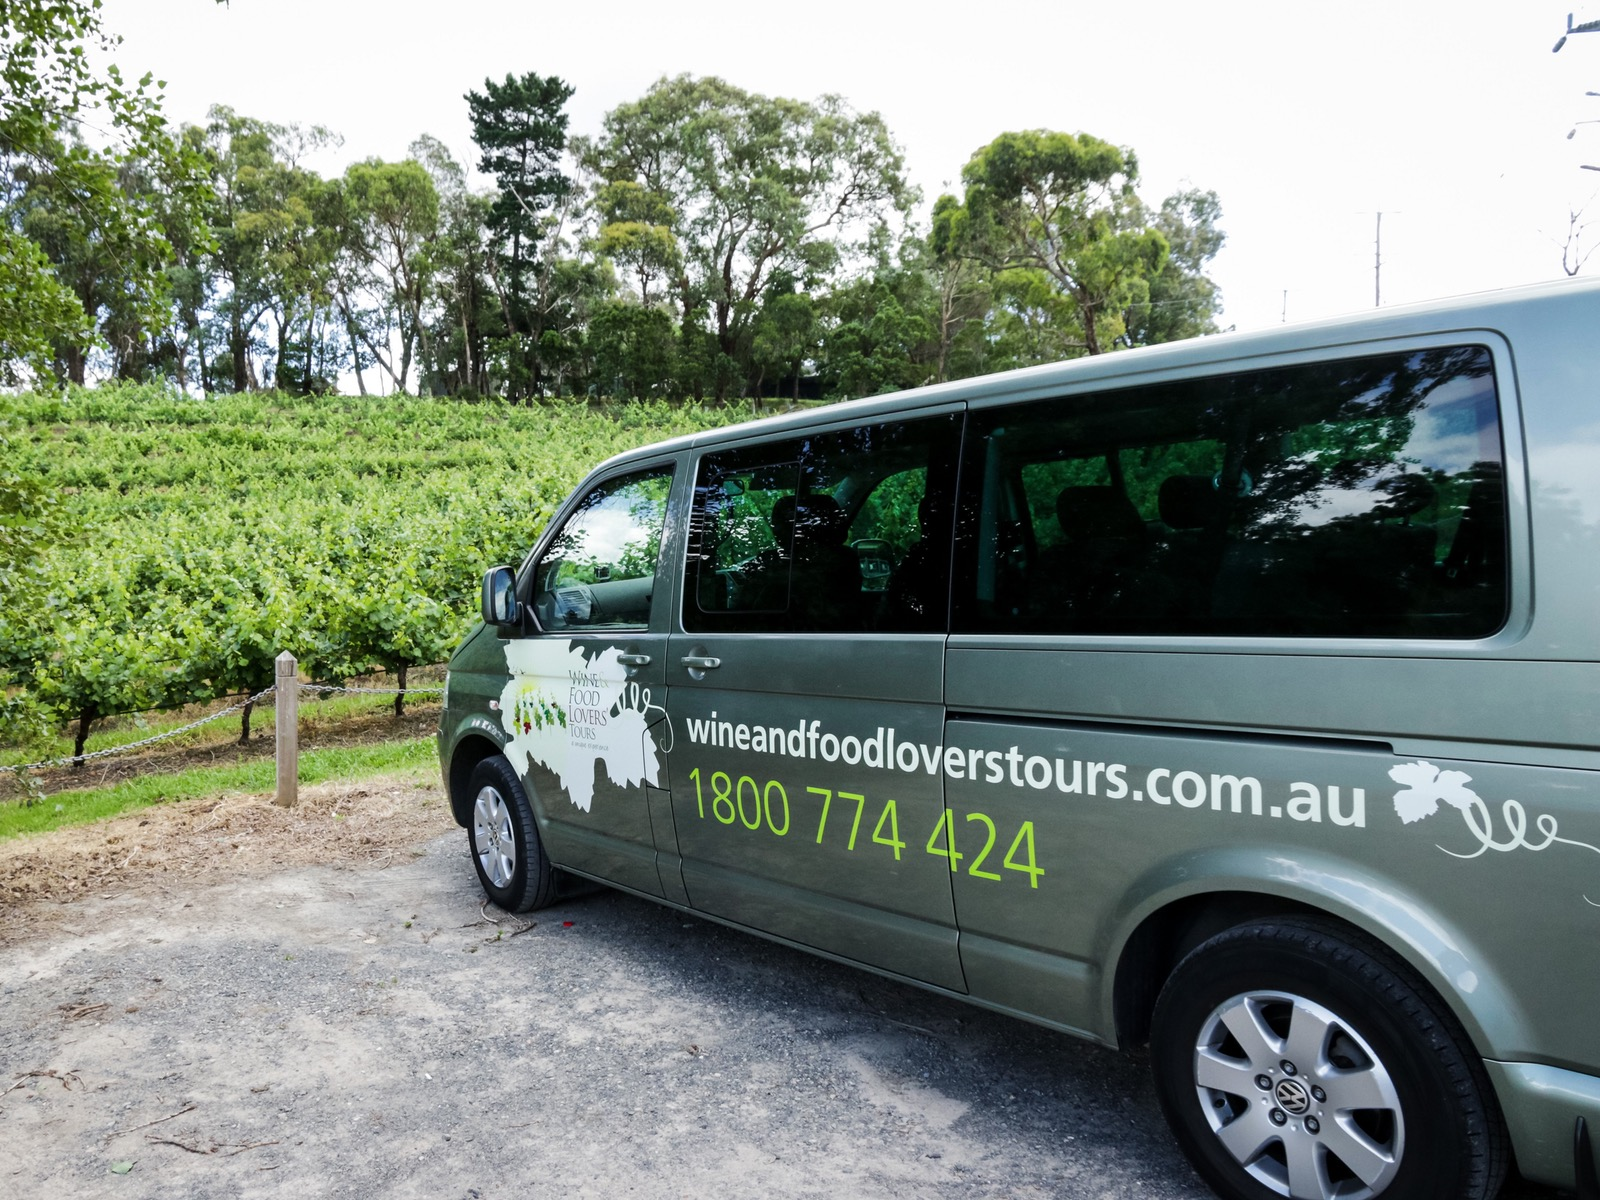 Fabulous Wine and Food Lovers' Tours vehicles